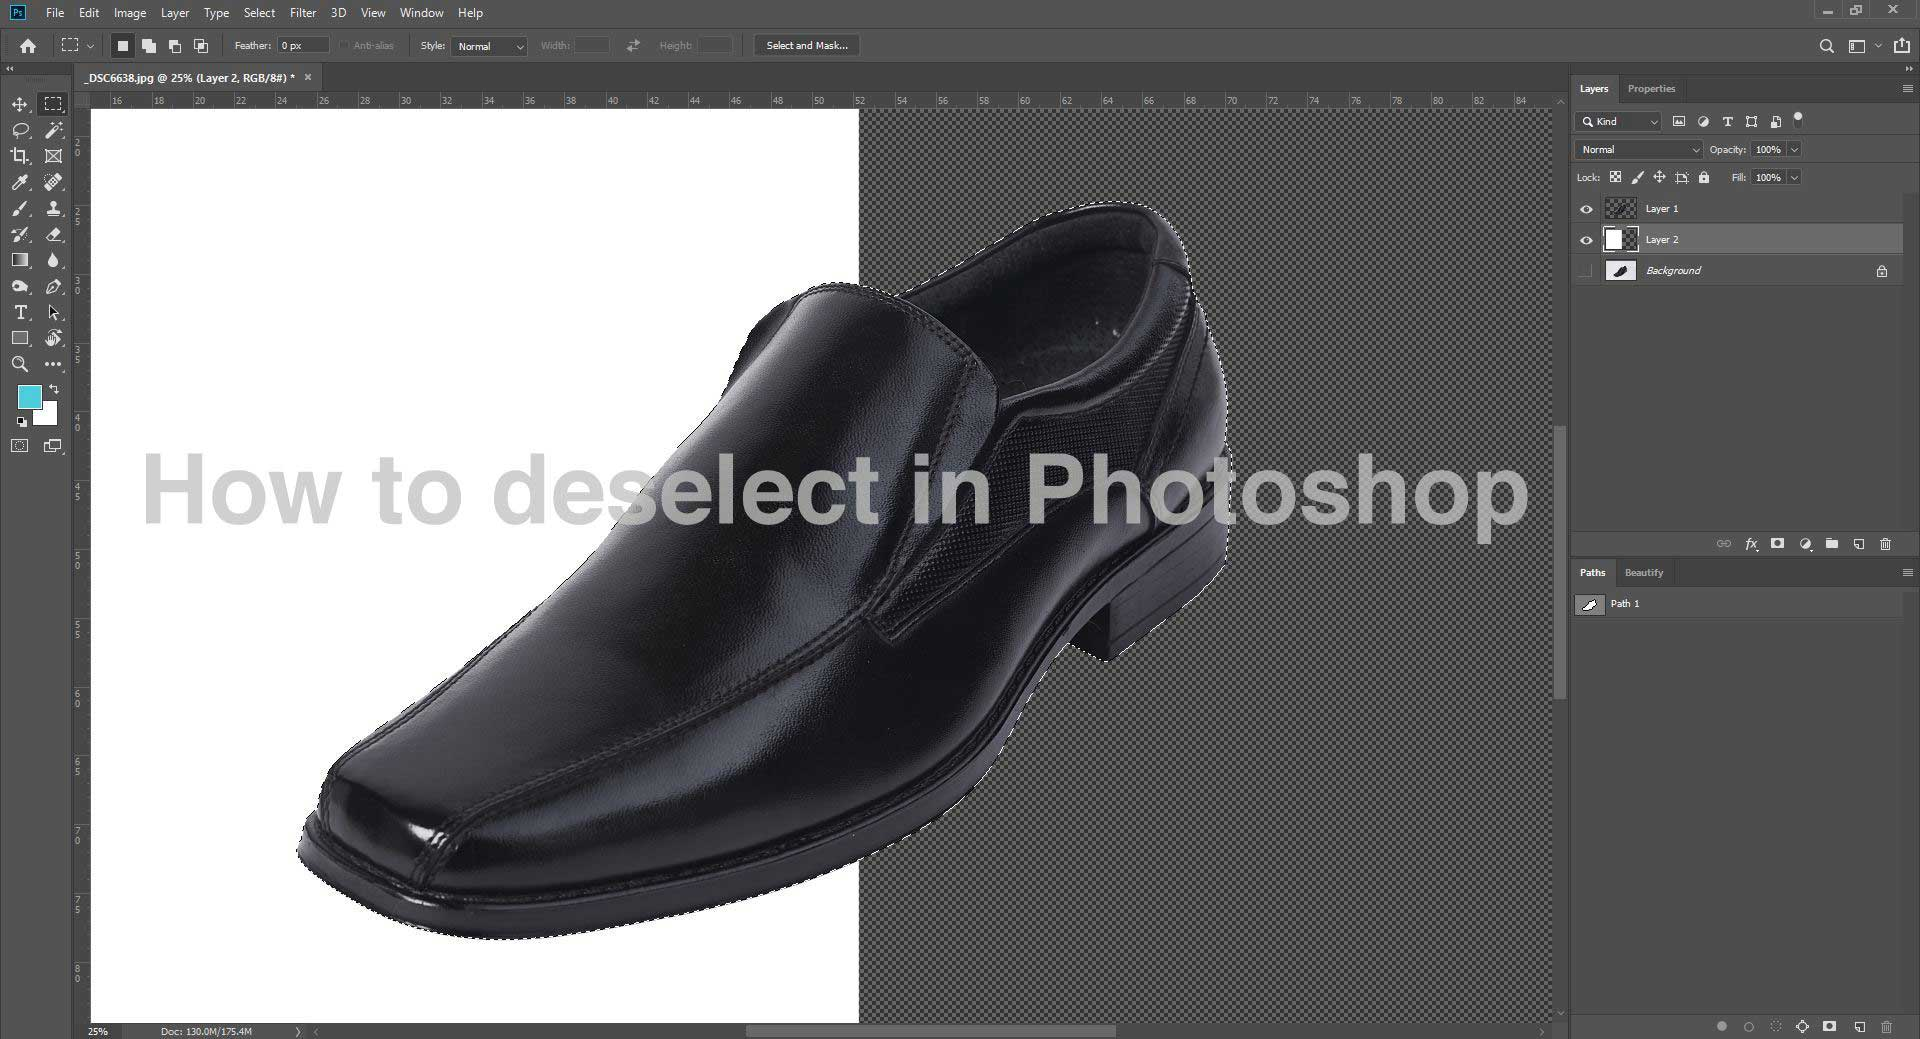 how to deselect in photoshop